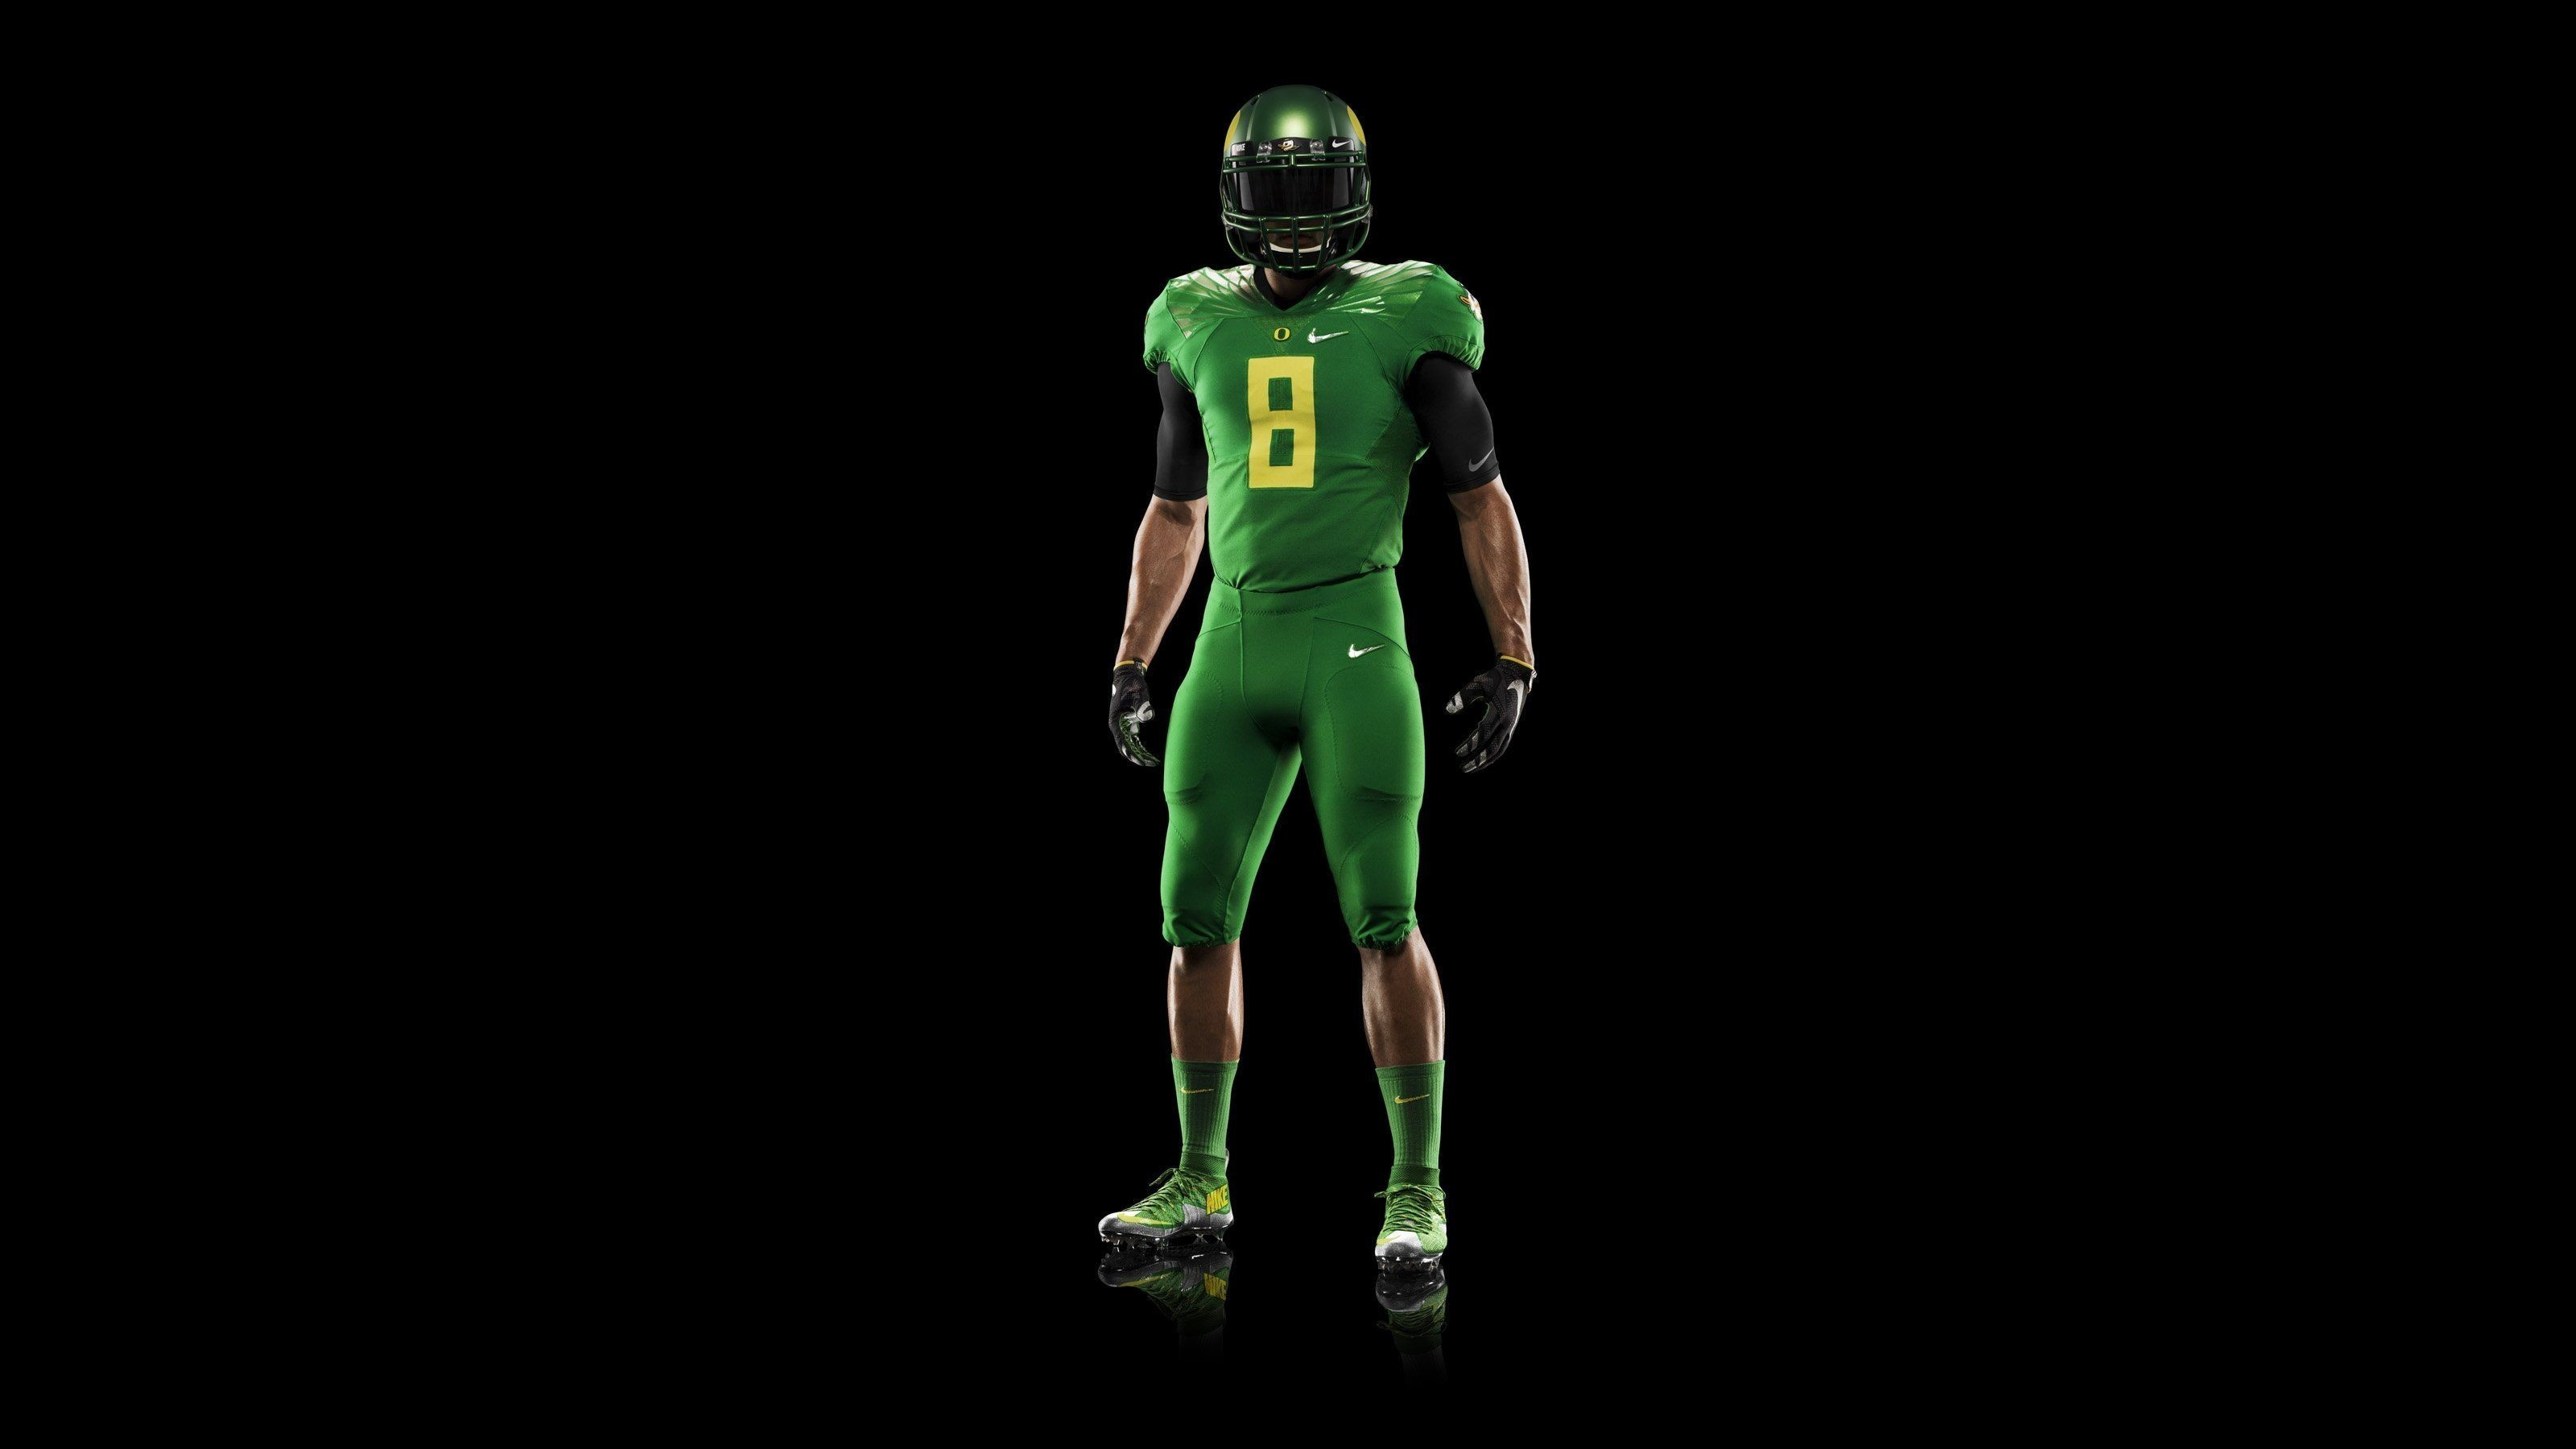 1920x1080 Football Oregon Ducks · HD Wallpaper | Background Image ID:211276